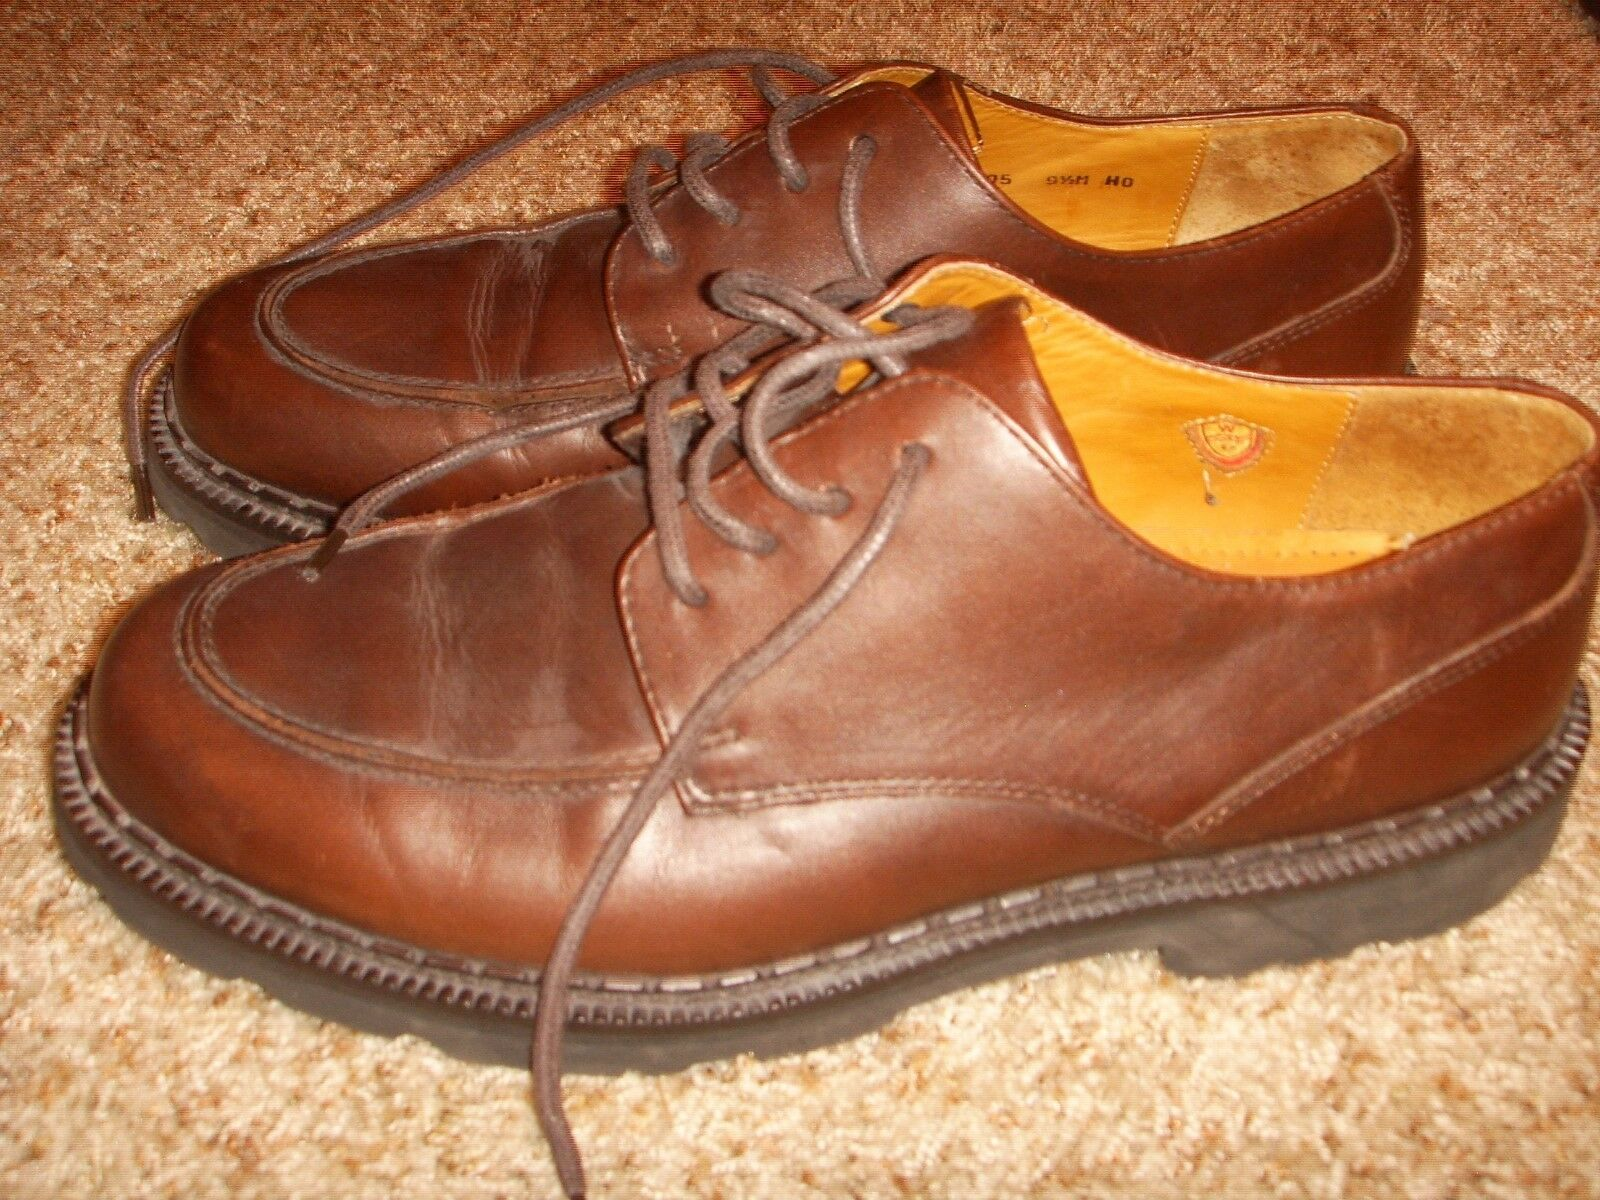 Cole Haan Country shoes Brown Leather Oxford 07305 Mens Size 9.5M